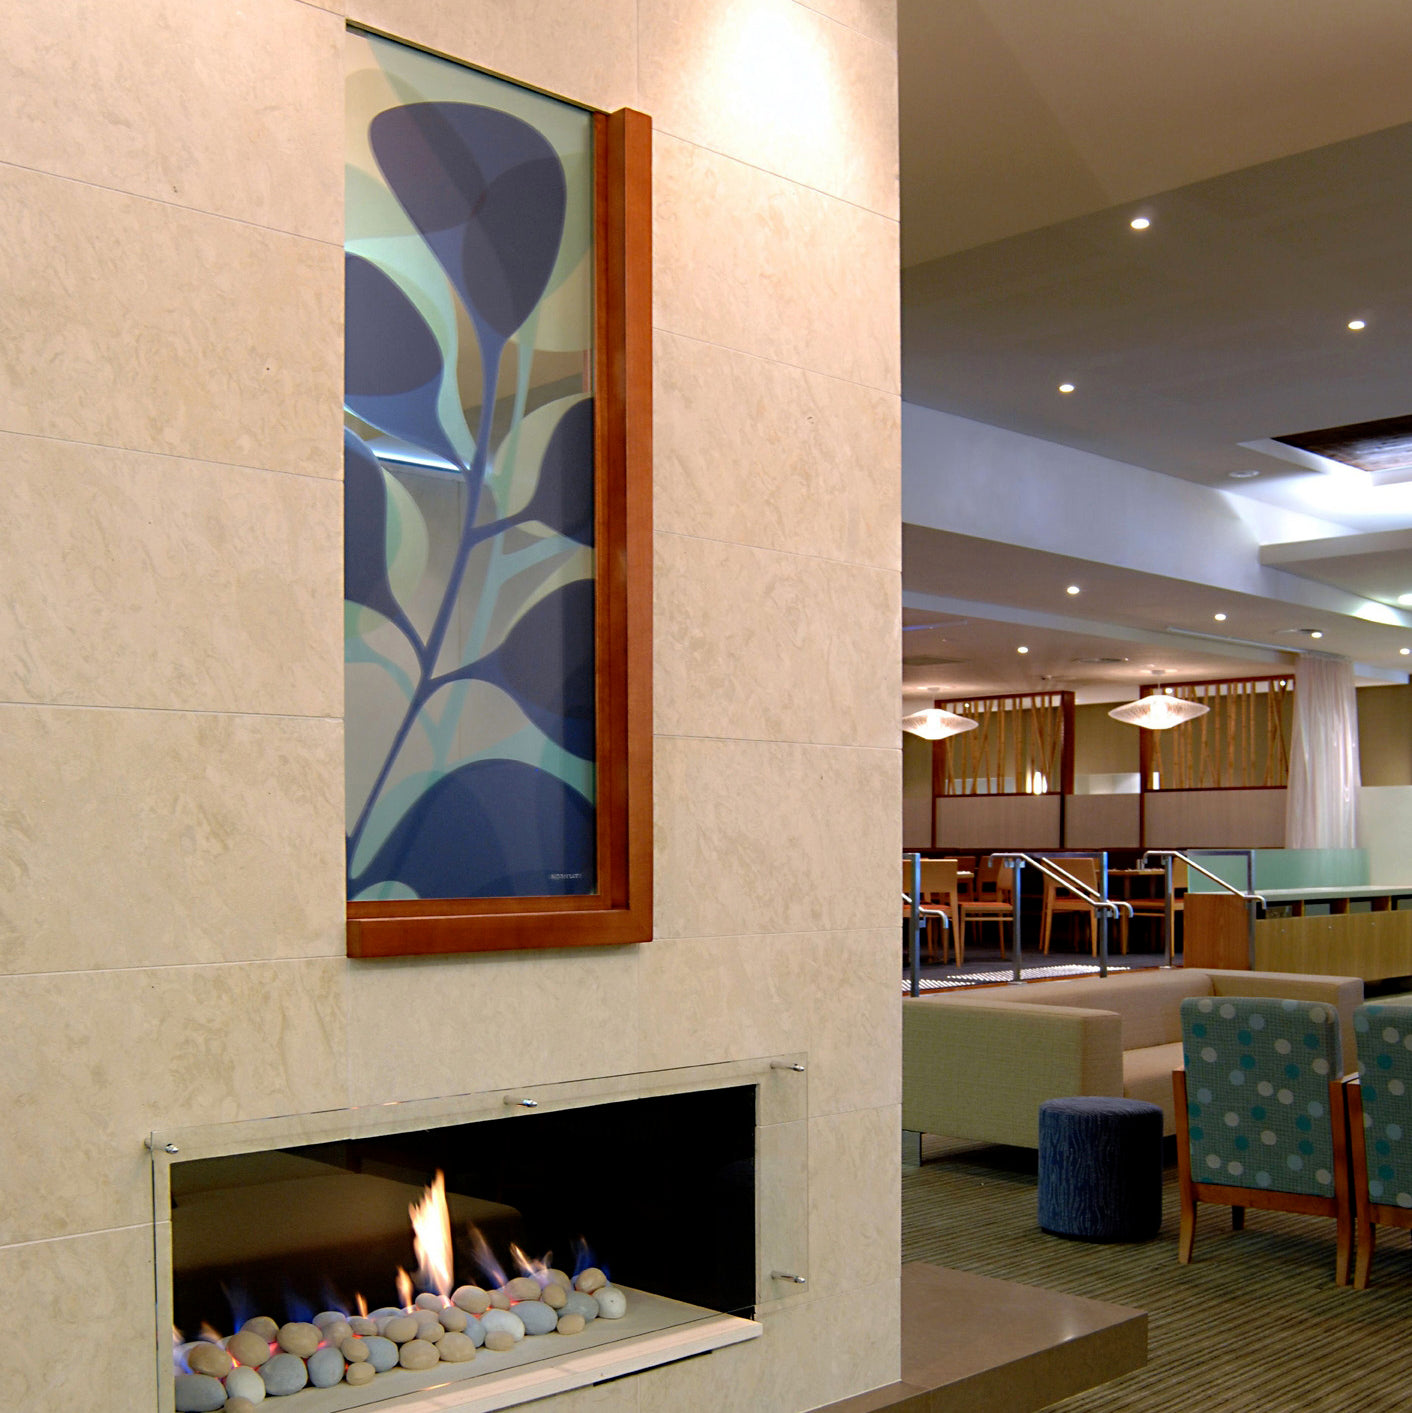 signarture kuranda artwork applied to mirror feature in hospitality setting